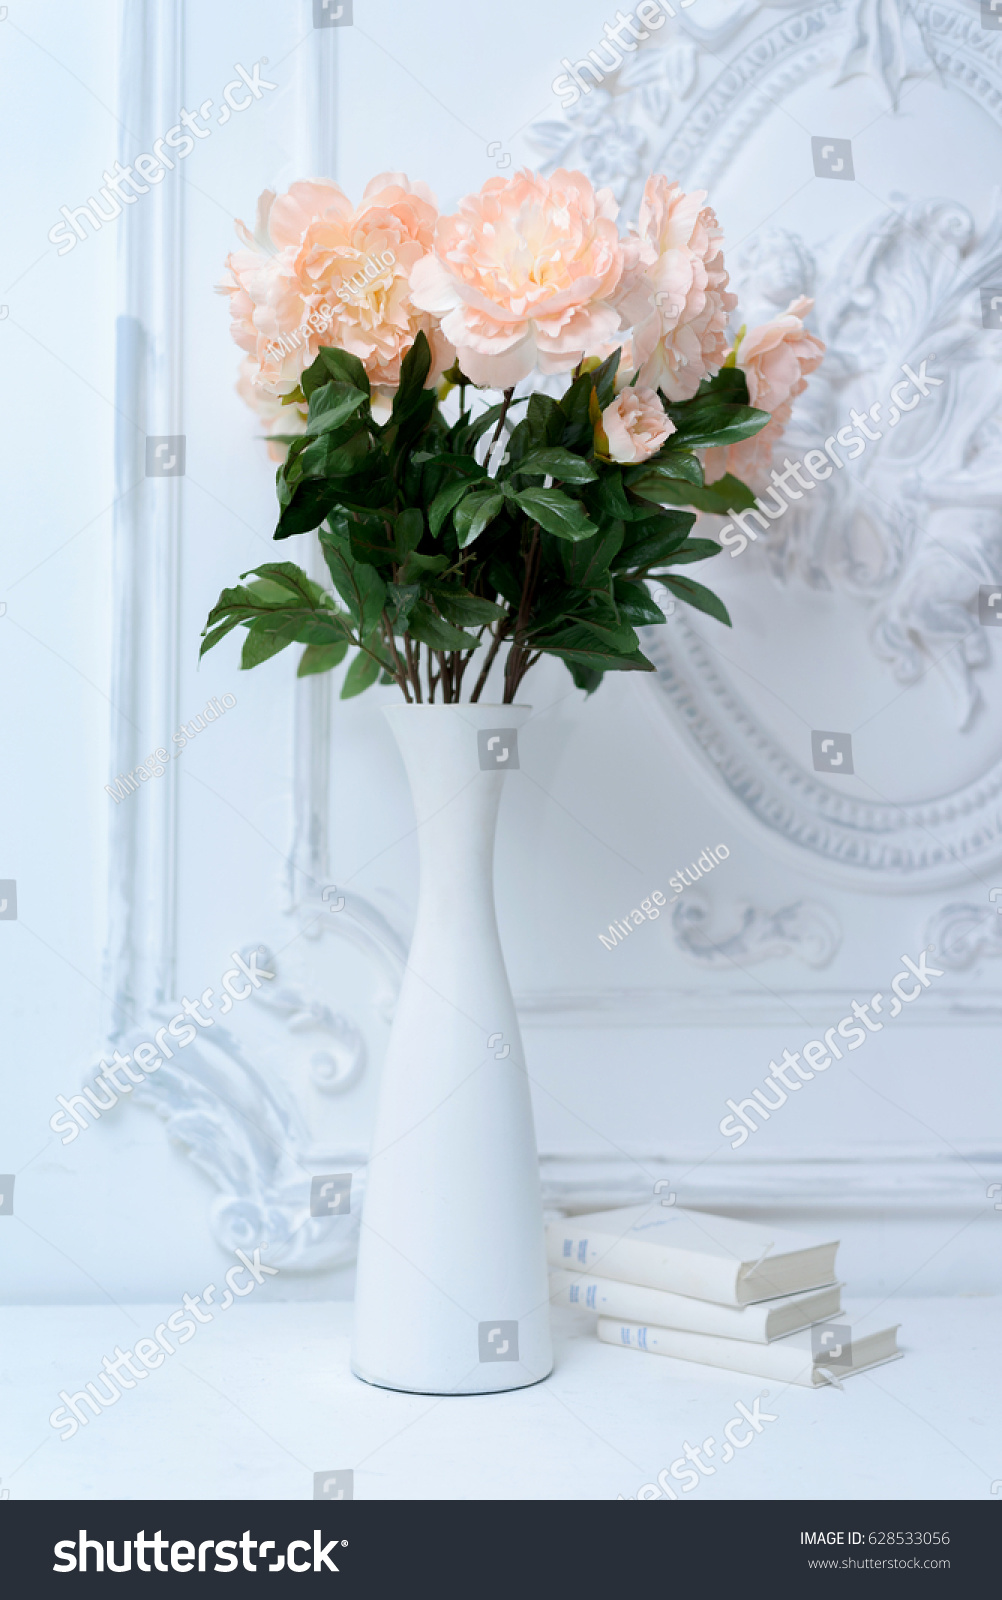 Artificial pink peonies white vase next stock photo 628533056 artificial pink peonies in a white vase next to white books composition of flowers in reviewsmspy